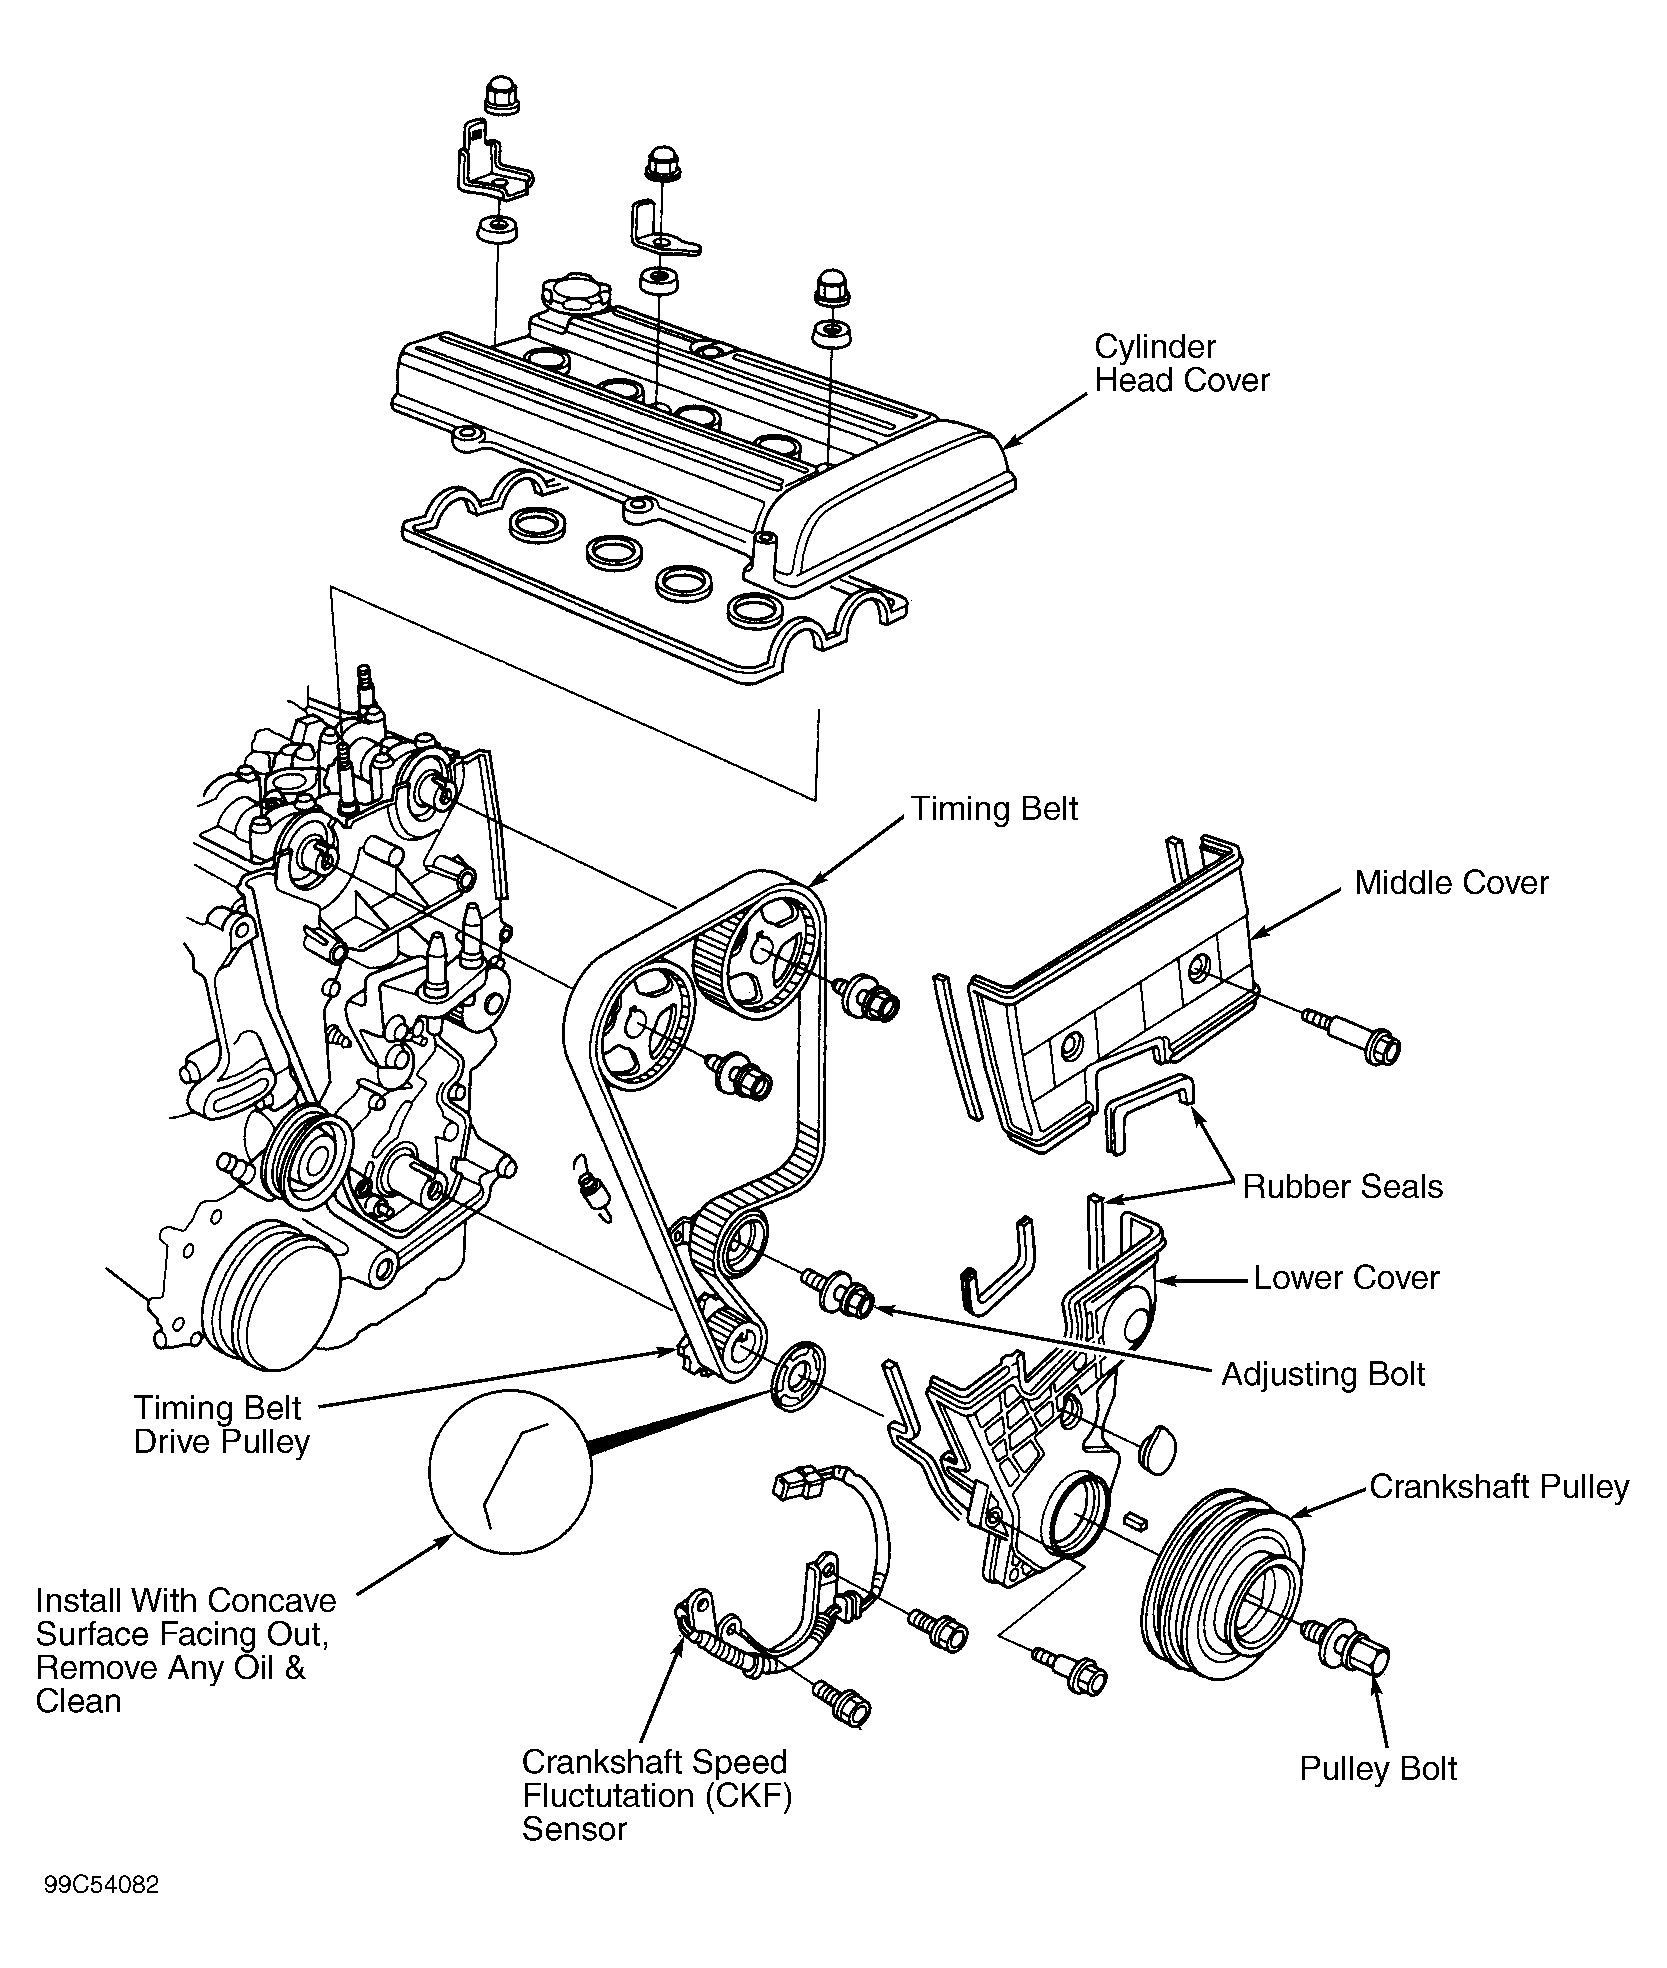 Honda Crv Engine Diagram Wiring Diagram 2003 Ford Excursion Engine Diagram 2003 Honda Crv Engine Diagram 4 In 2020 Honda Crv Ford Excursion Diagram